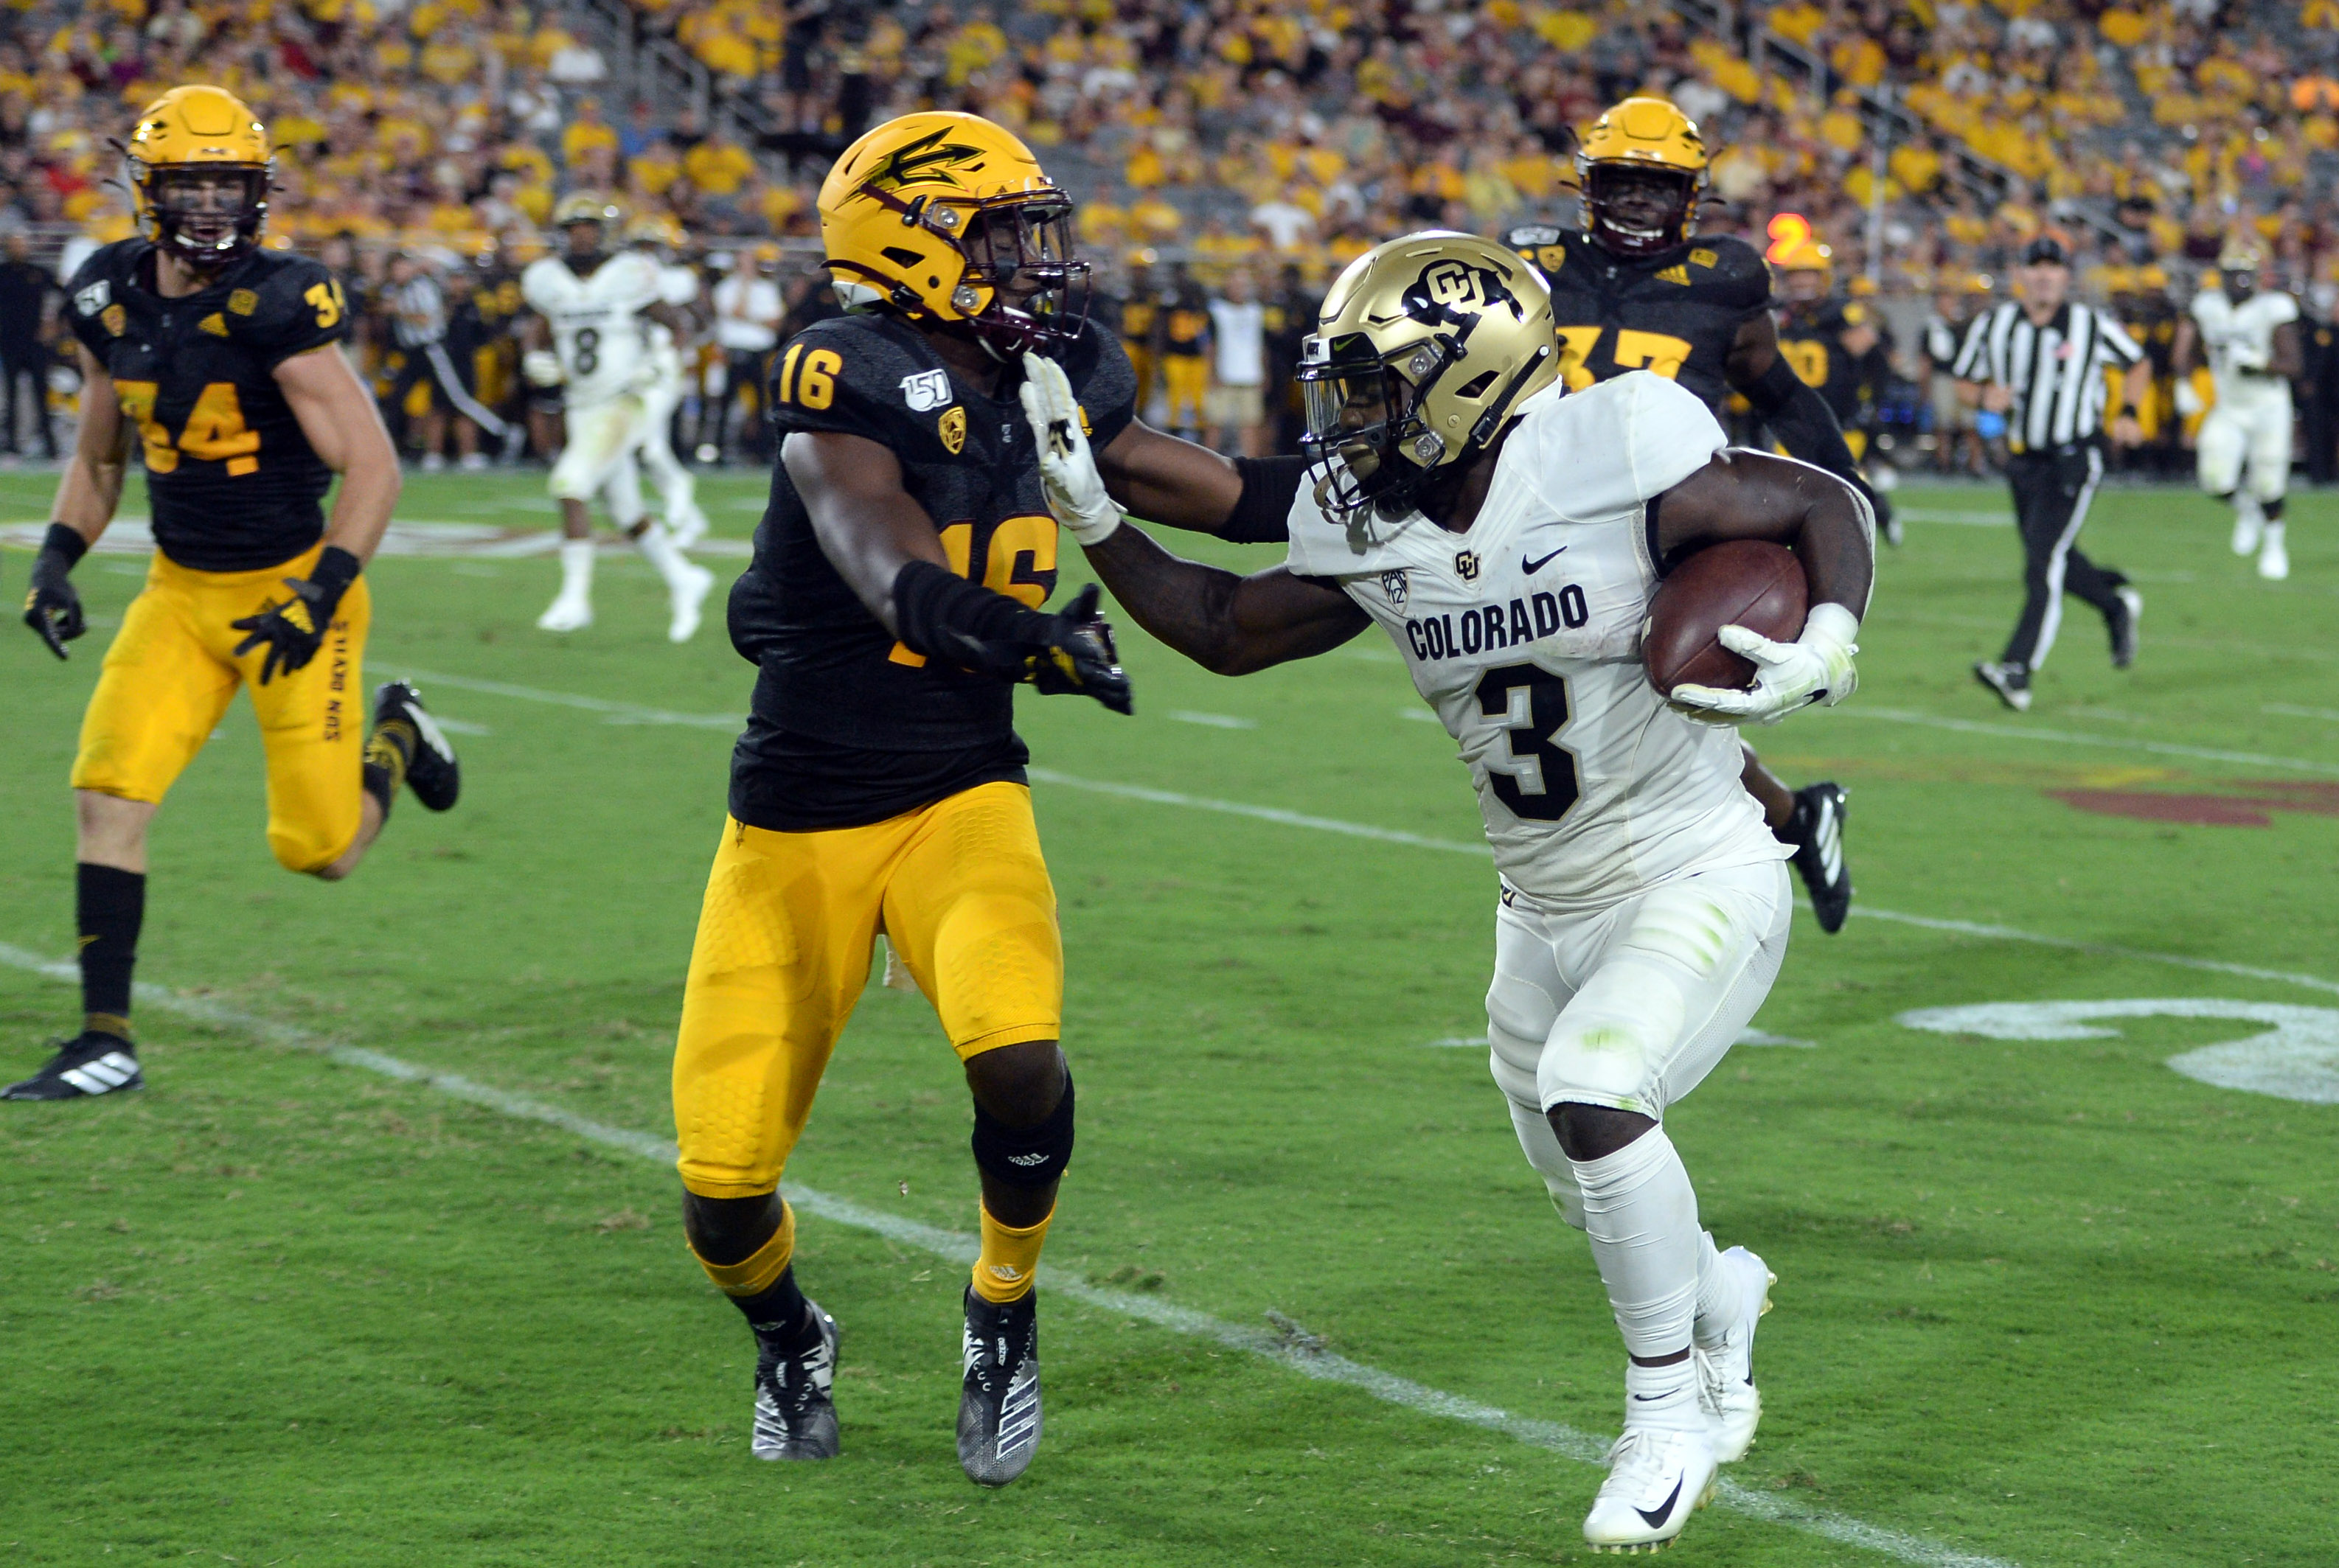 NCAA Football: Colorado at Arizona State